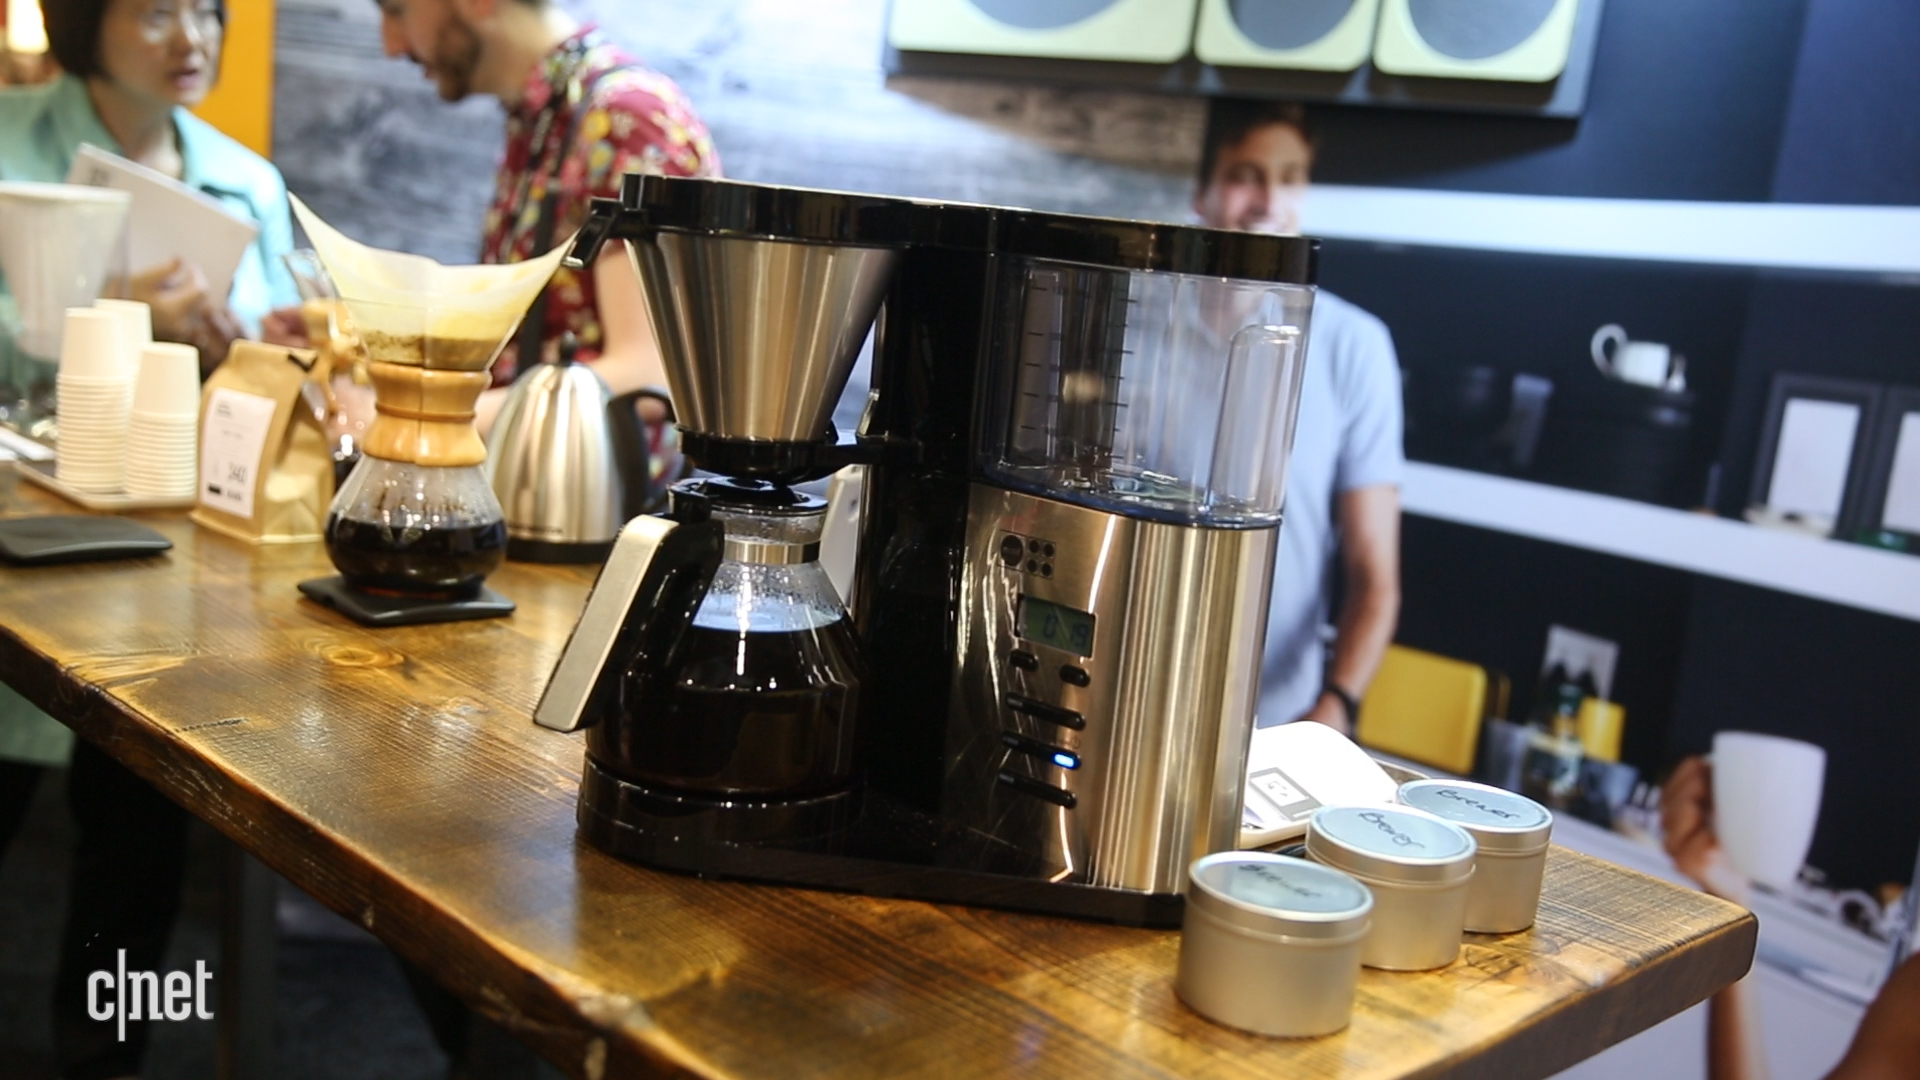 Video: Meet the new Motif line of advanced coffee machines